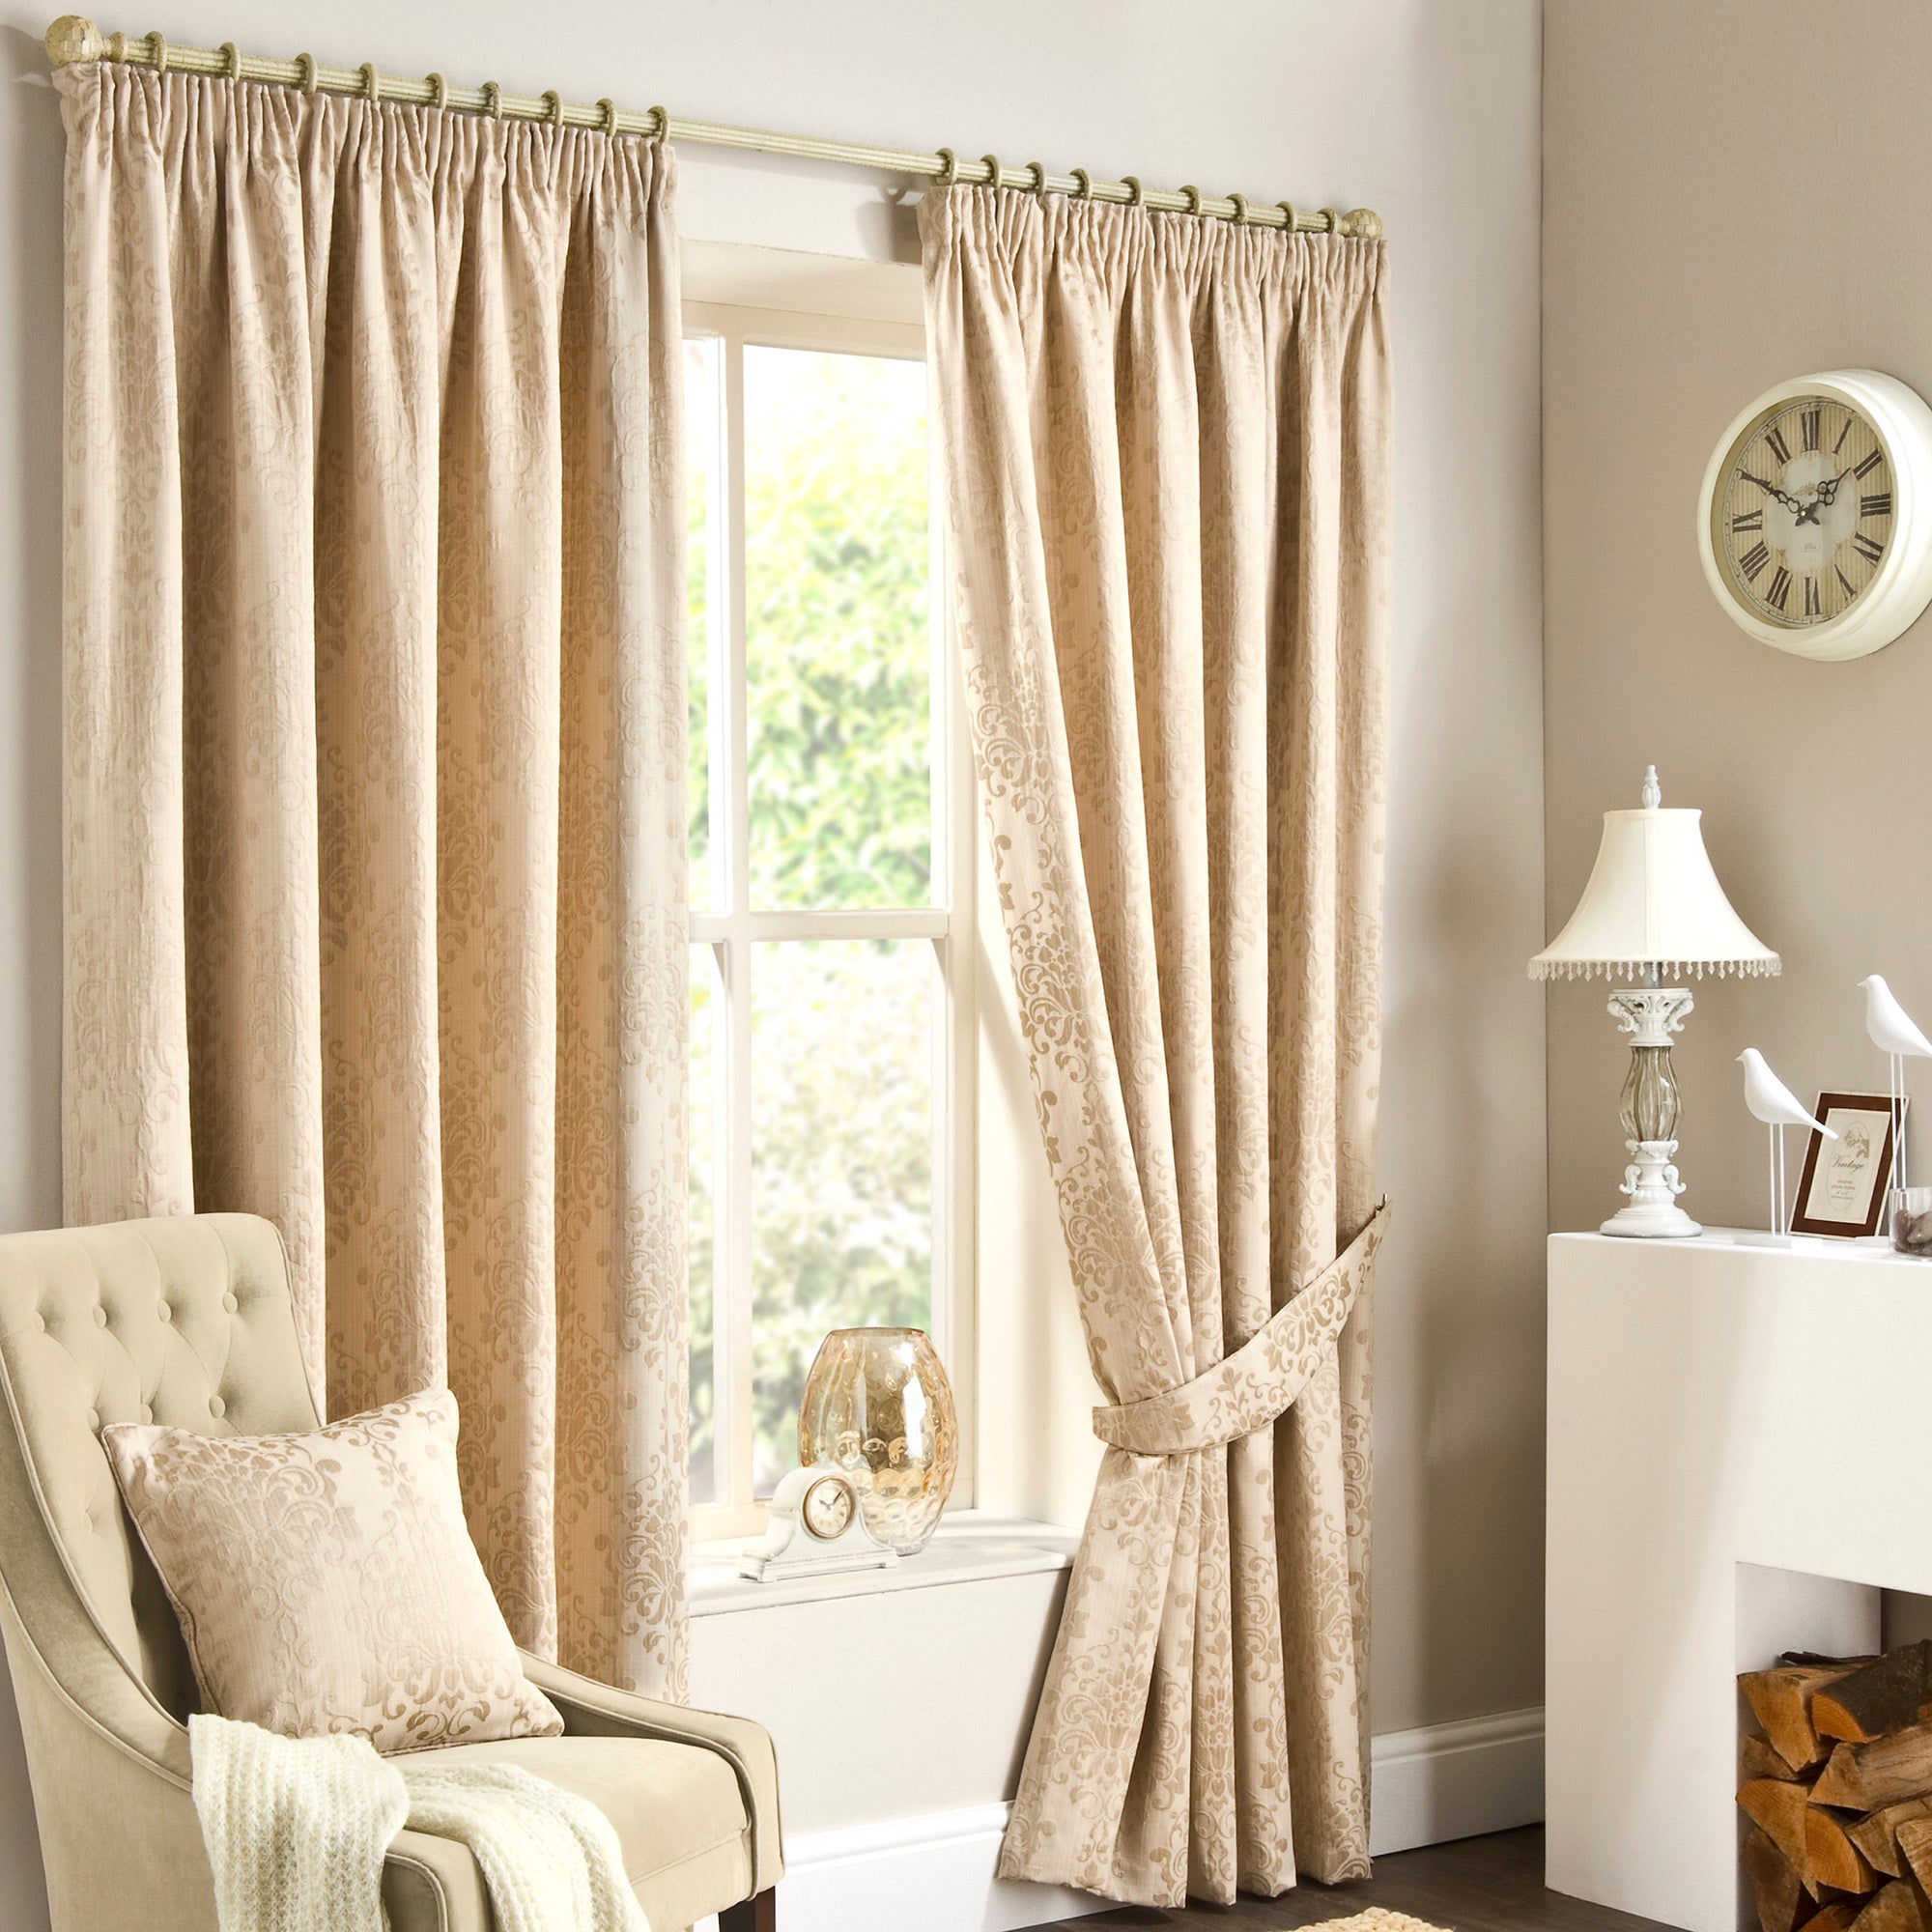 Natural murano curtain collection dunelm for Space fabric dunelm